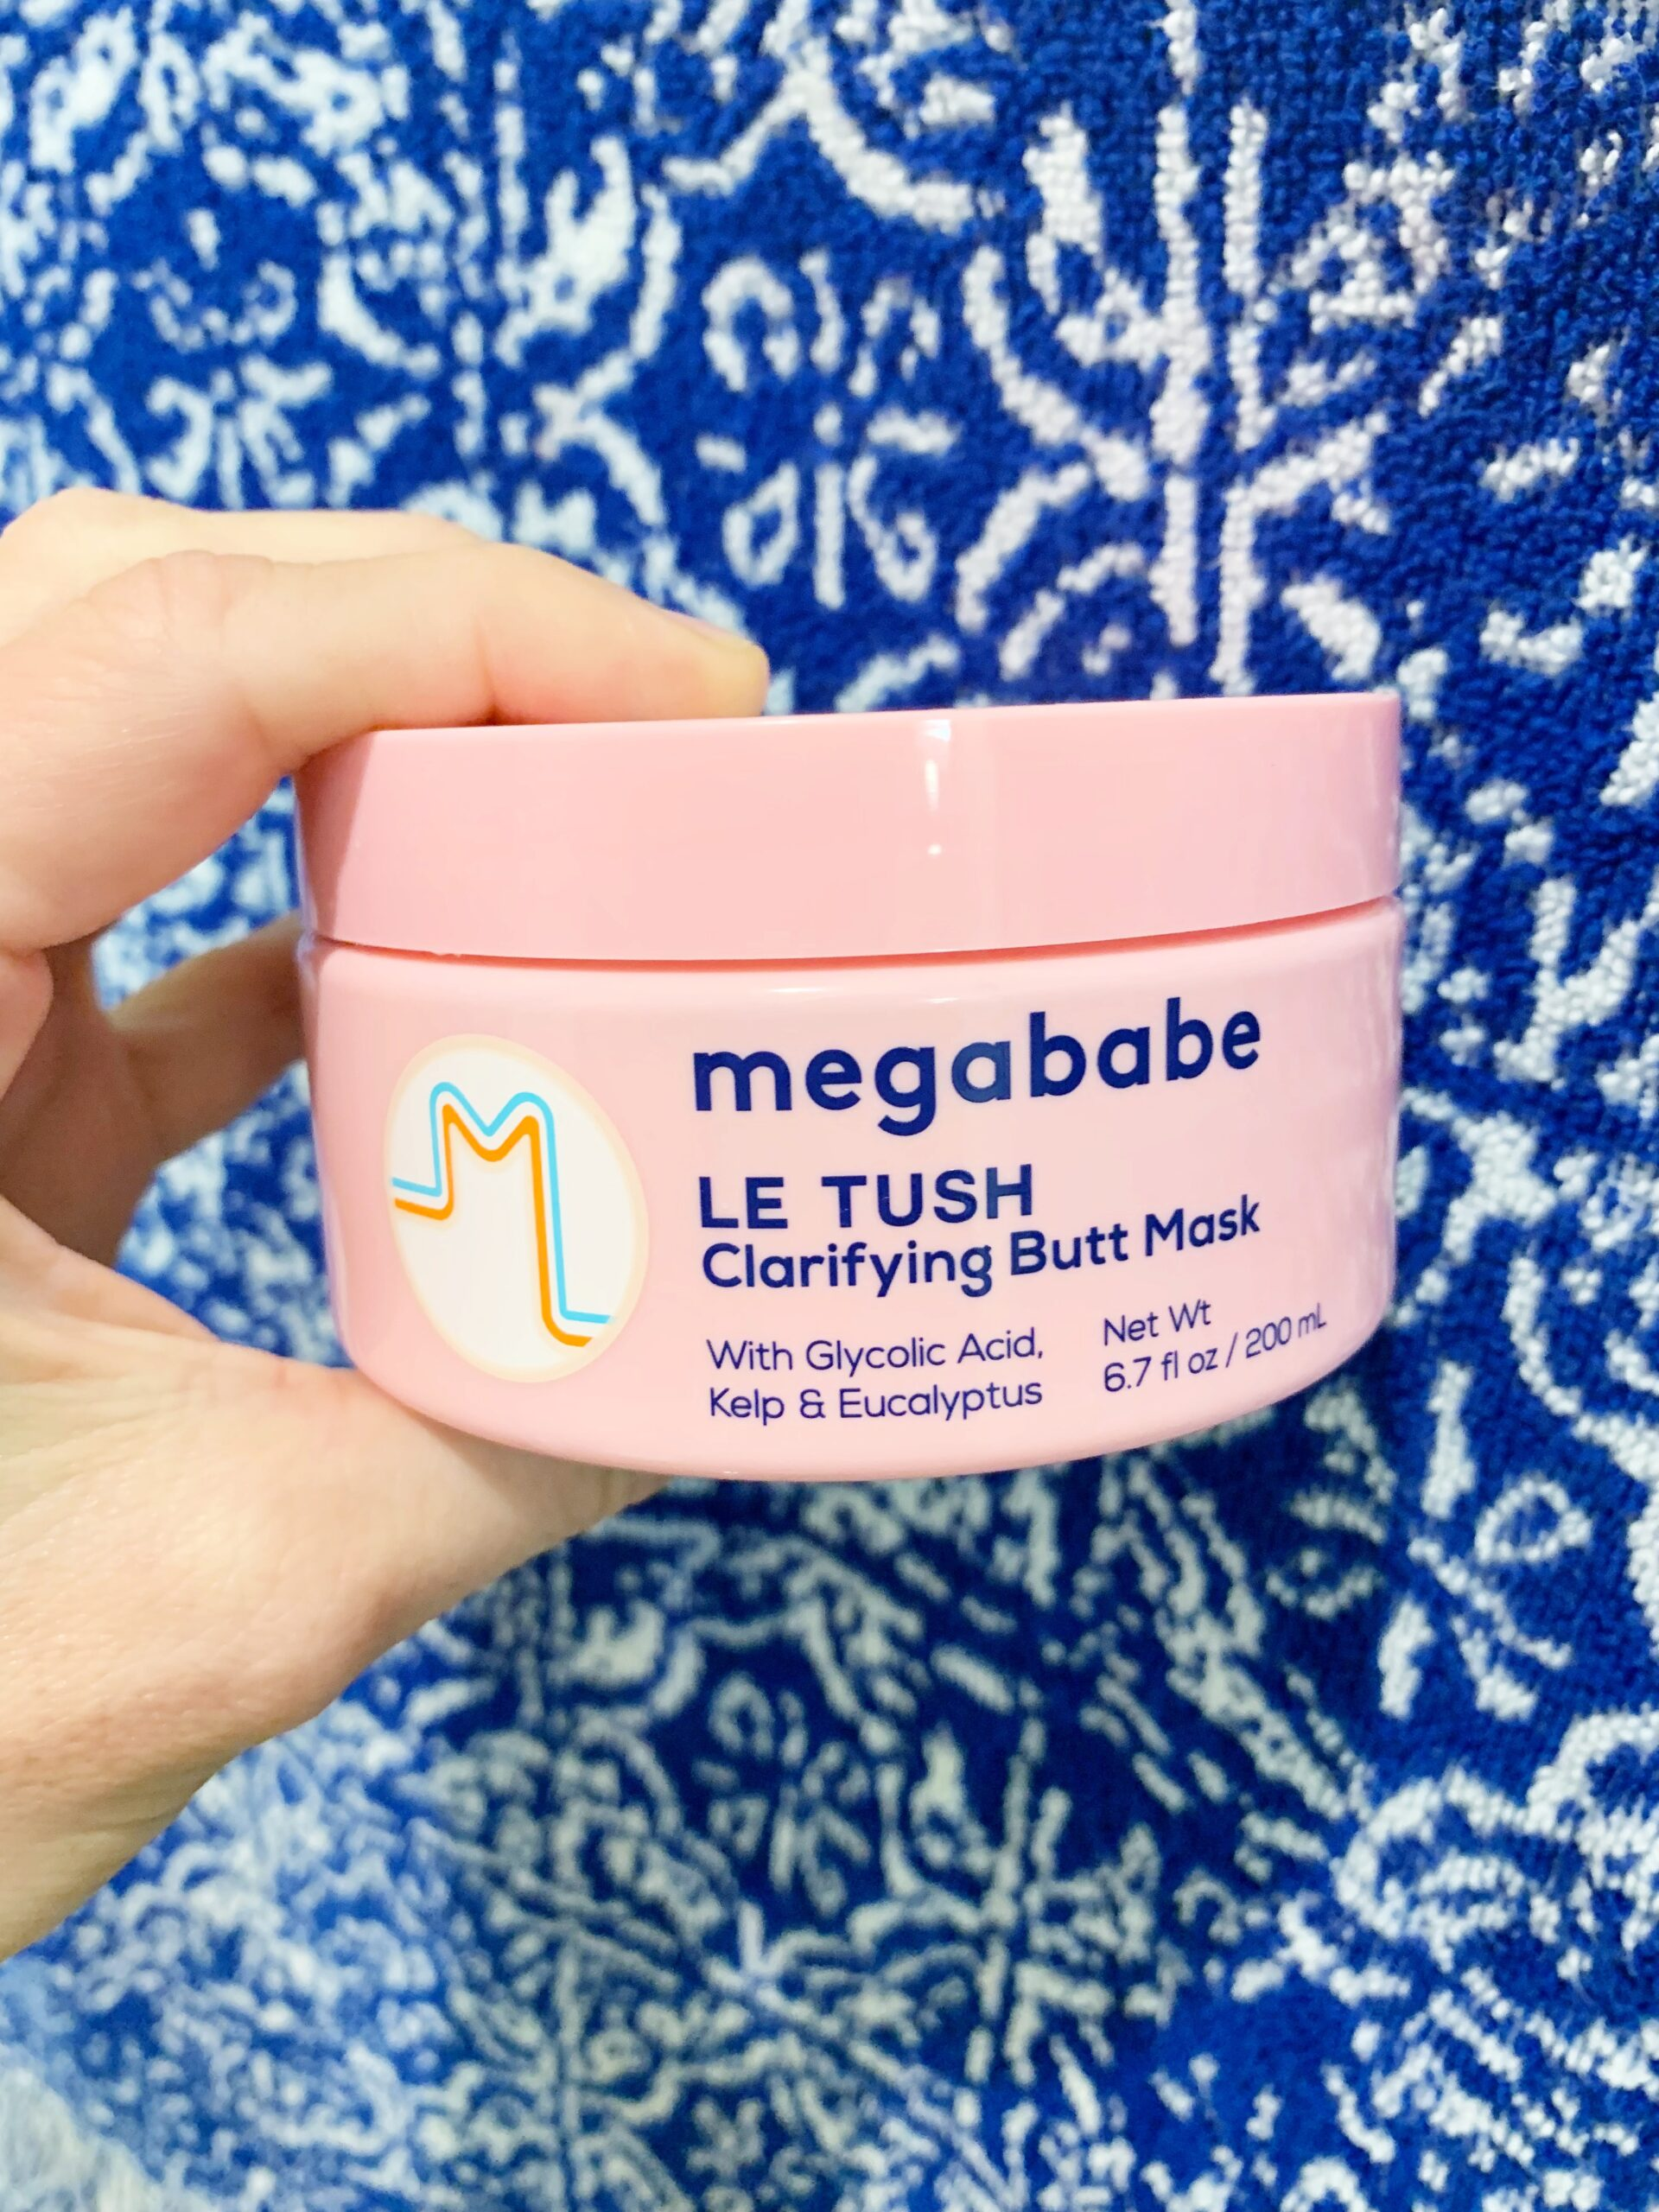 Megababe Le Tush Butt Mask Review - Intrigued by Megababe Le Tush? It's described as a 'facial grade mask' for your butt...and I'm sharing all the details! | Megababe Le Tush Review - Le Tush Butt Mask - Megababe Butt Mask - Megababe Review